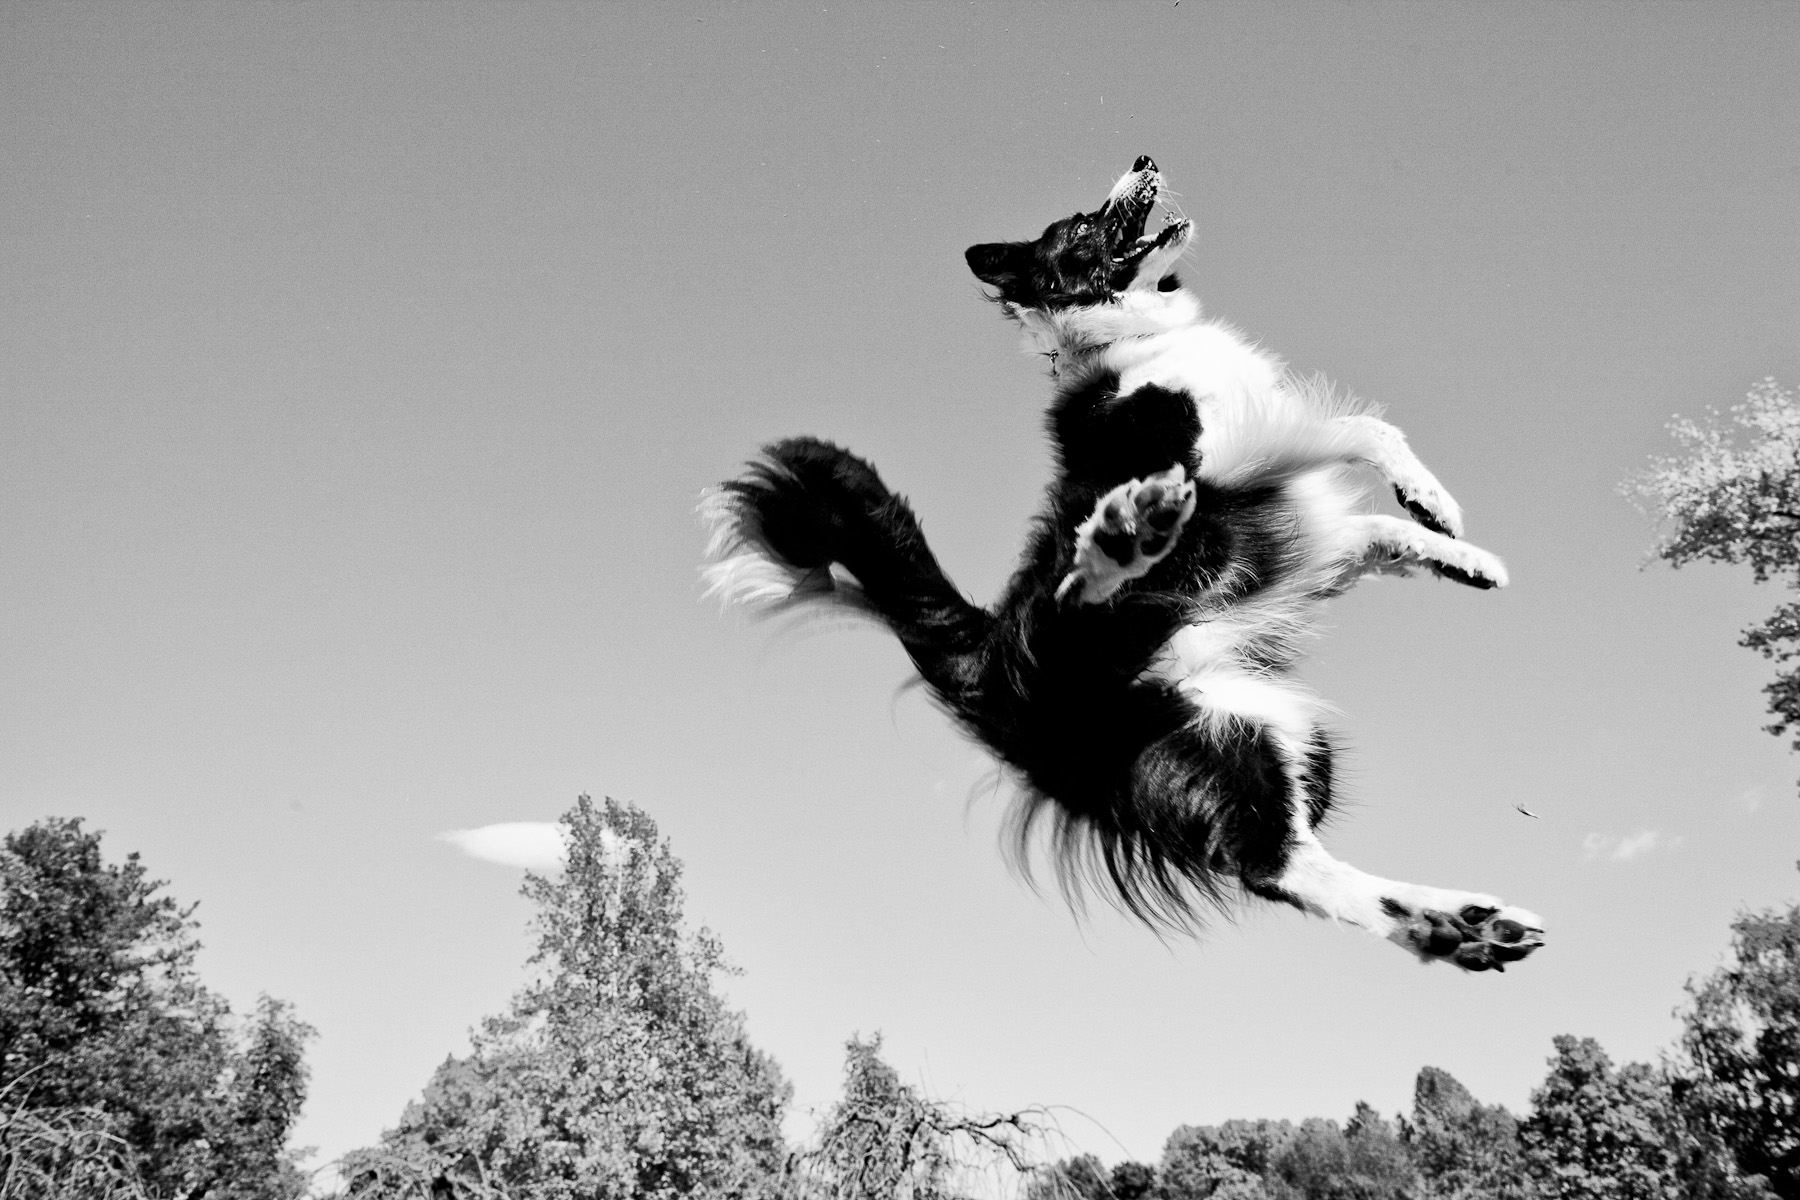 Lyra airborne during her leap to catch a pine cone in Tivoli park in Ljubljana, Slovenia, October 14, 2011.